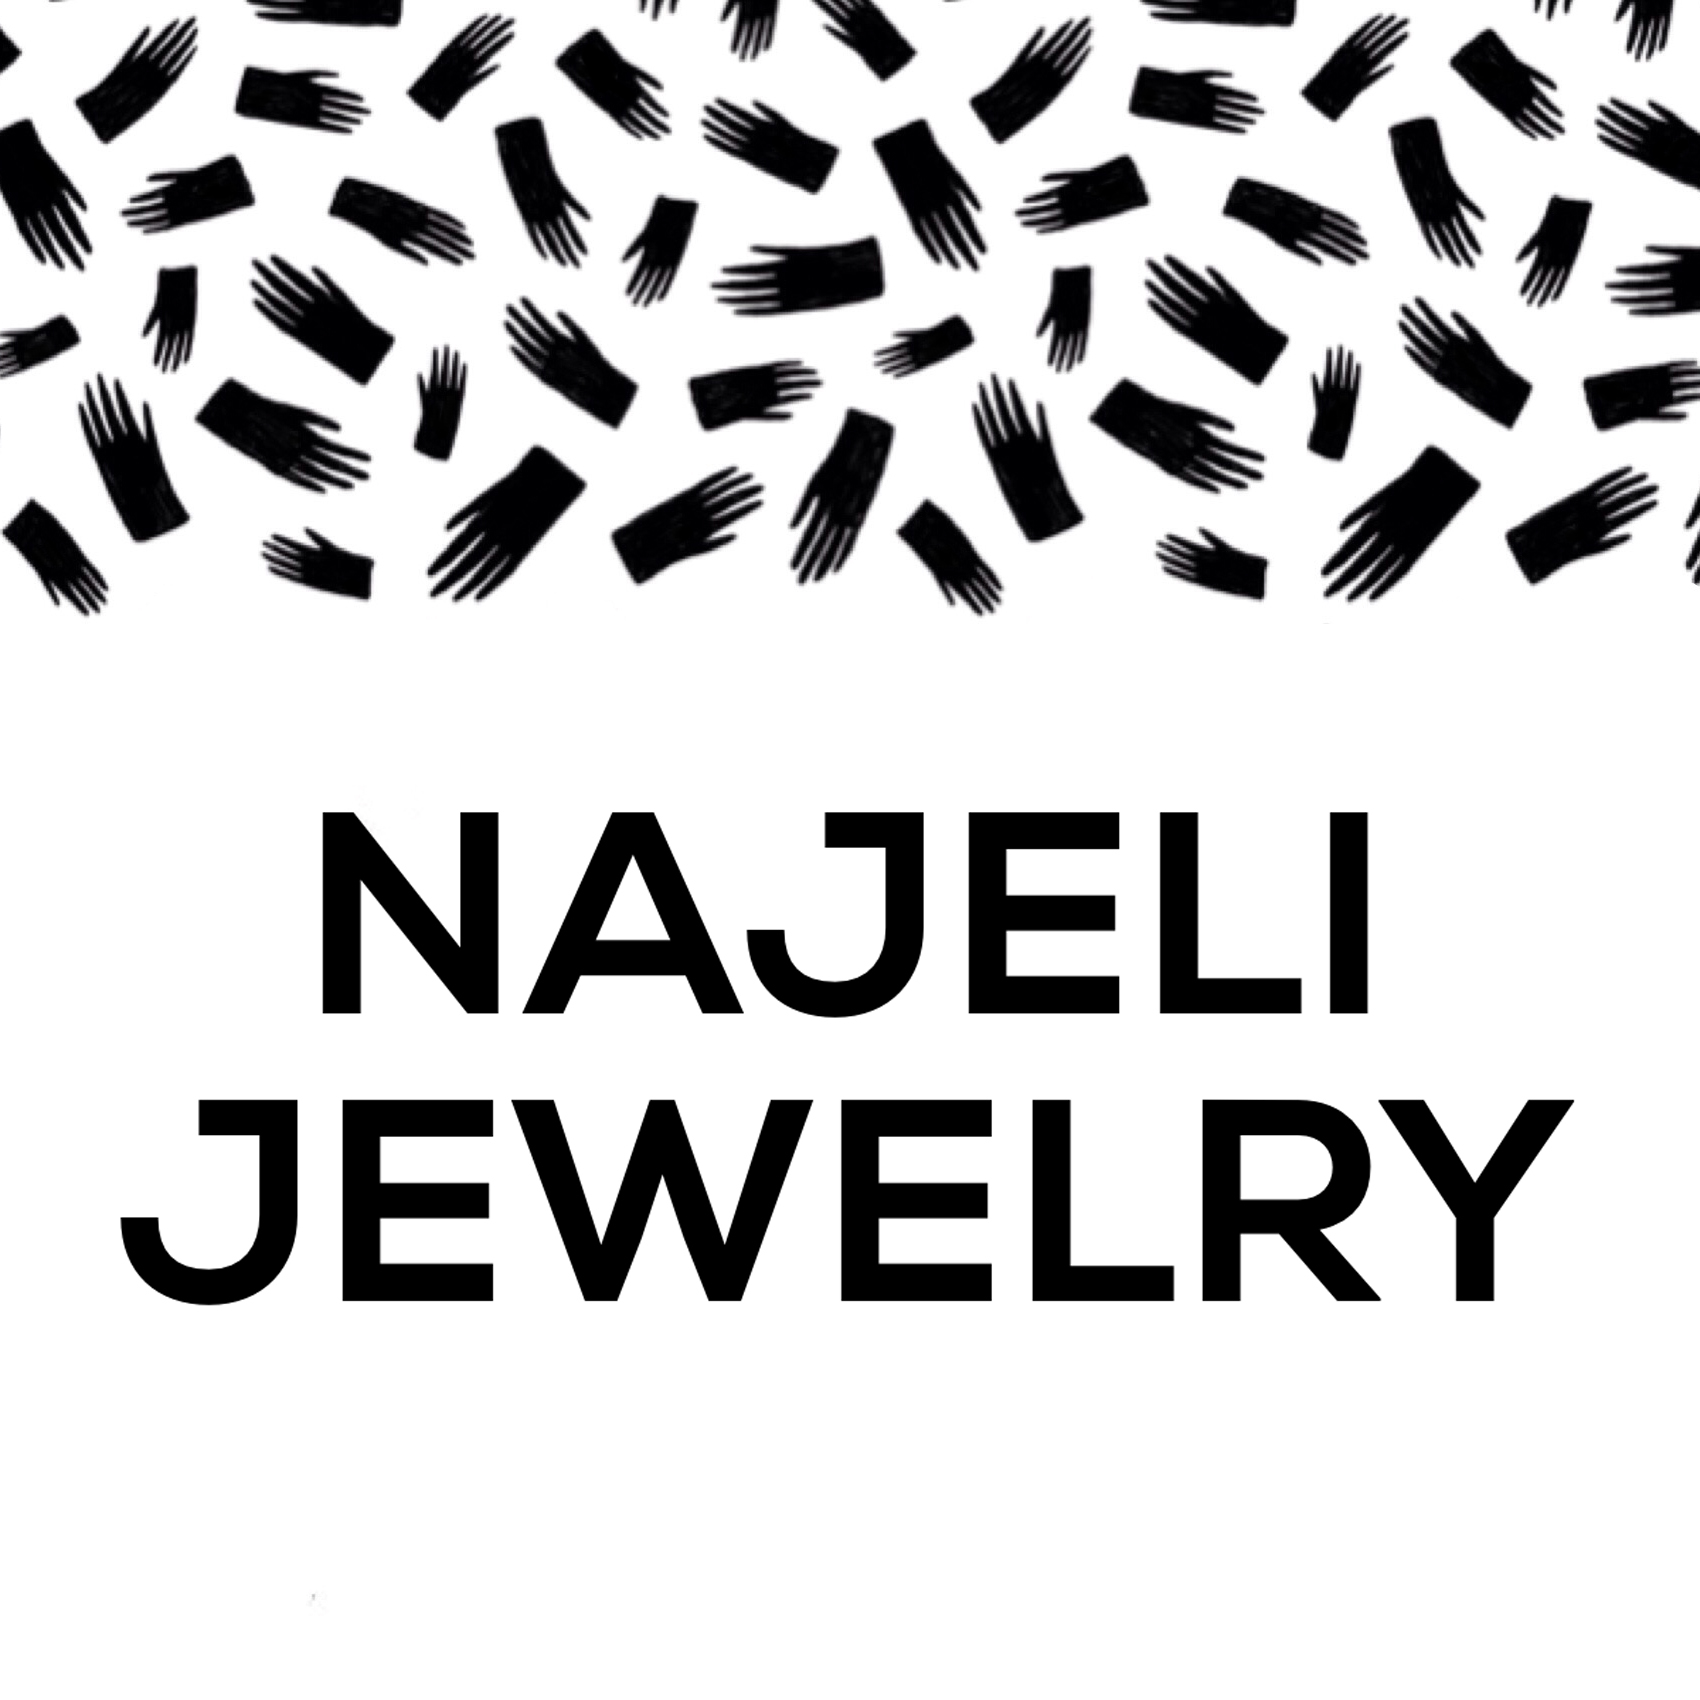 NAJELI JEWELRY & APPAREL